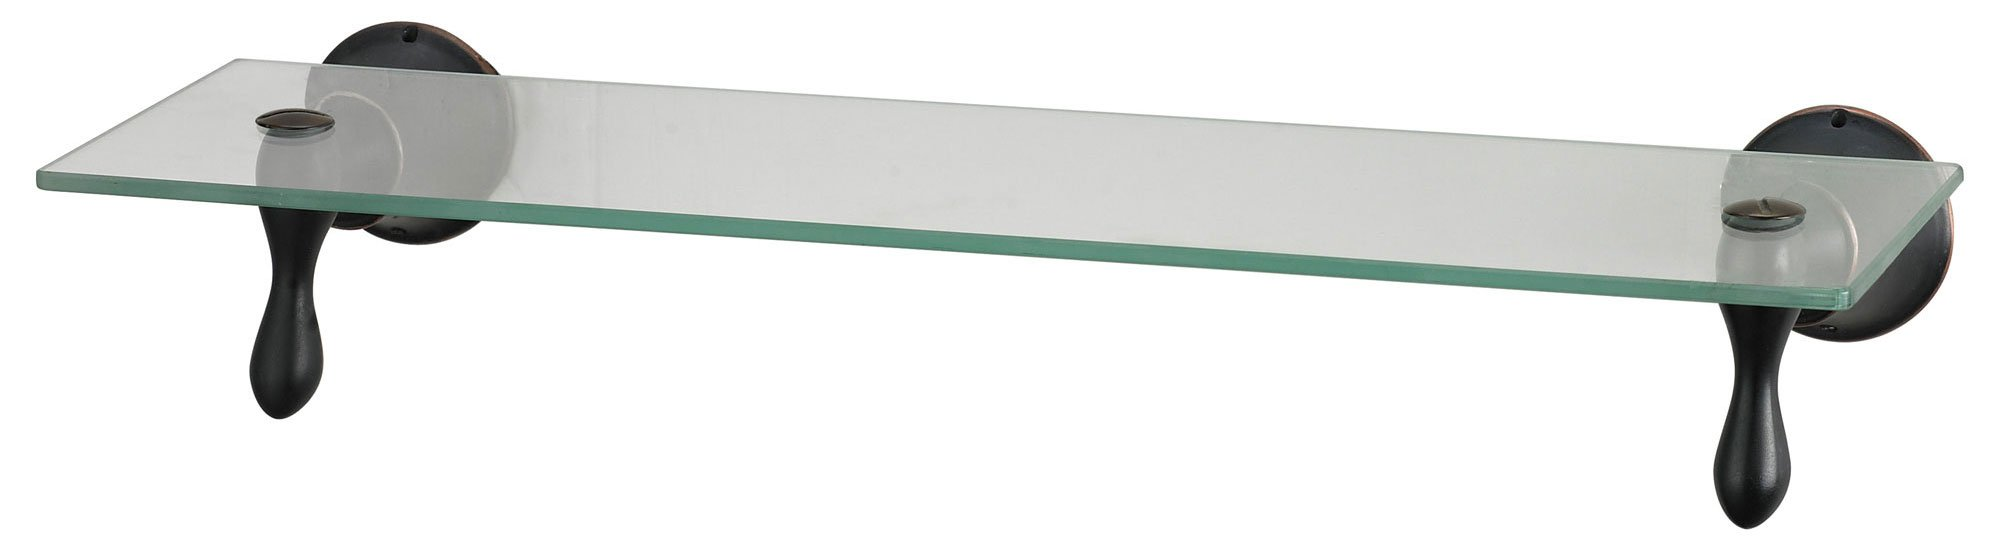 Cheap 12 Inch Glass Shelf, find 12 Inch Glass Shelf deals on line at ...